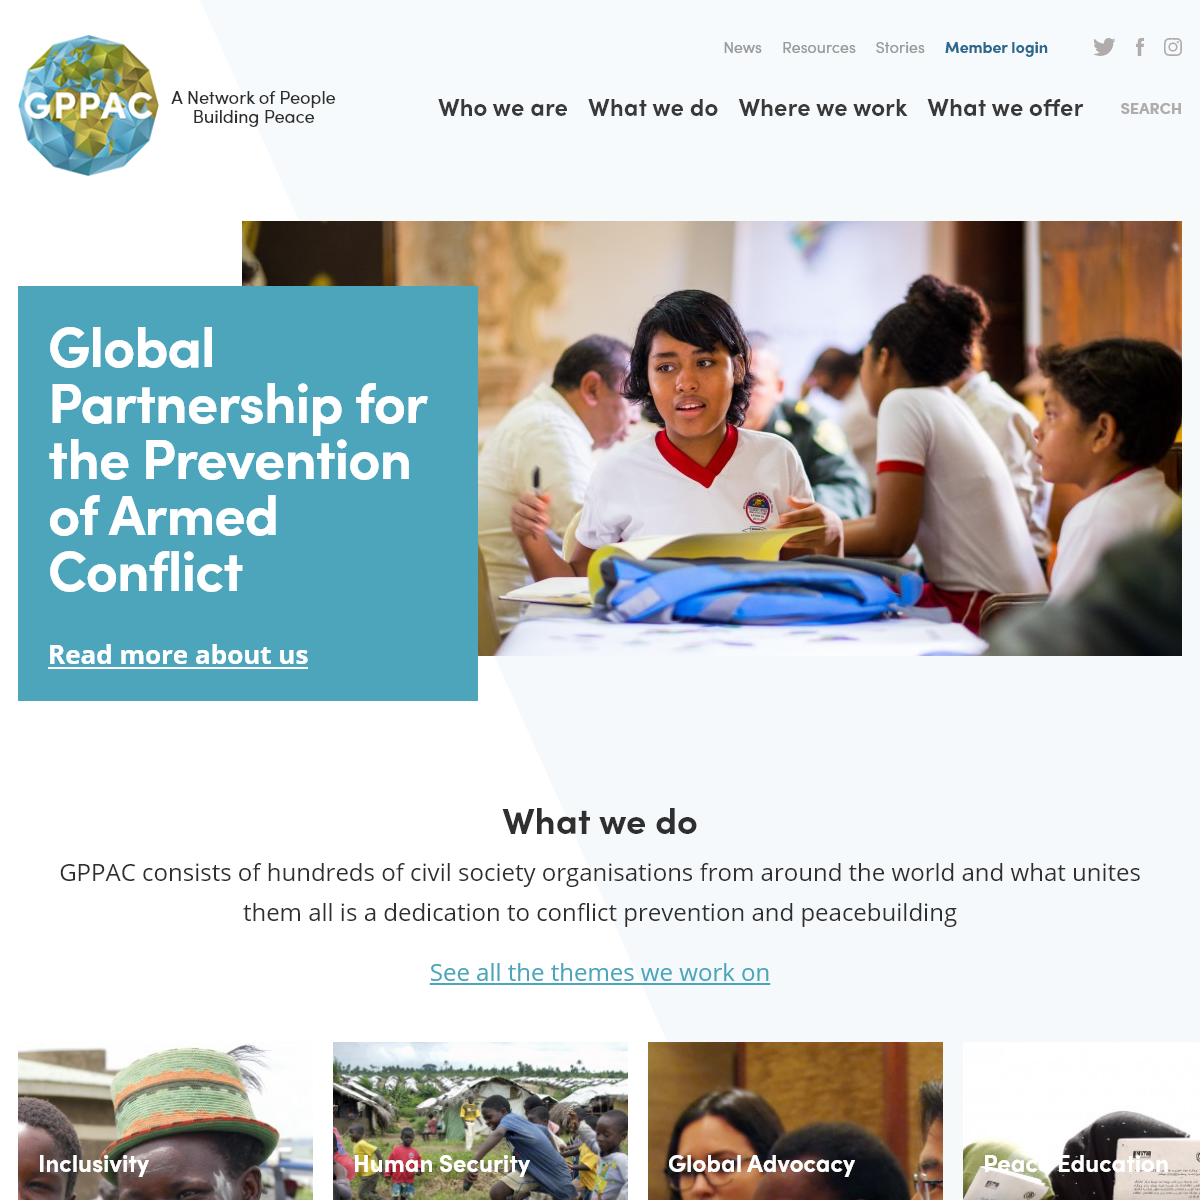 GPPAC - Prevention of Armed Conflict - Peacebuilding Network